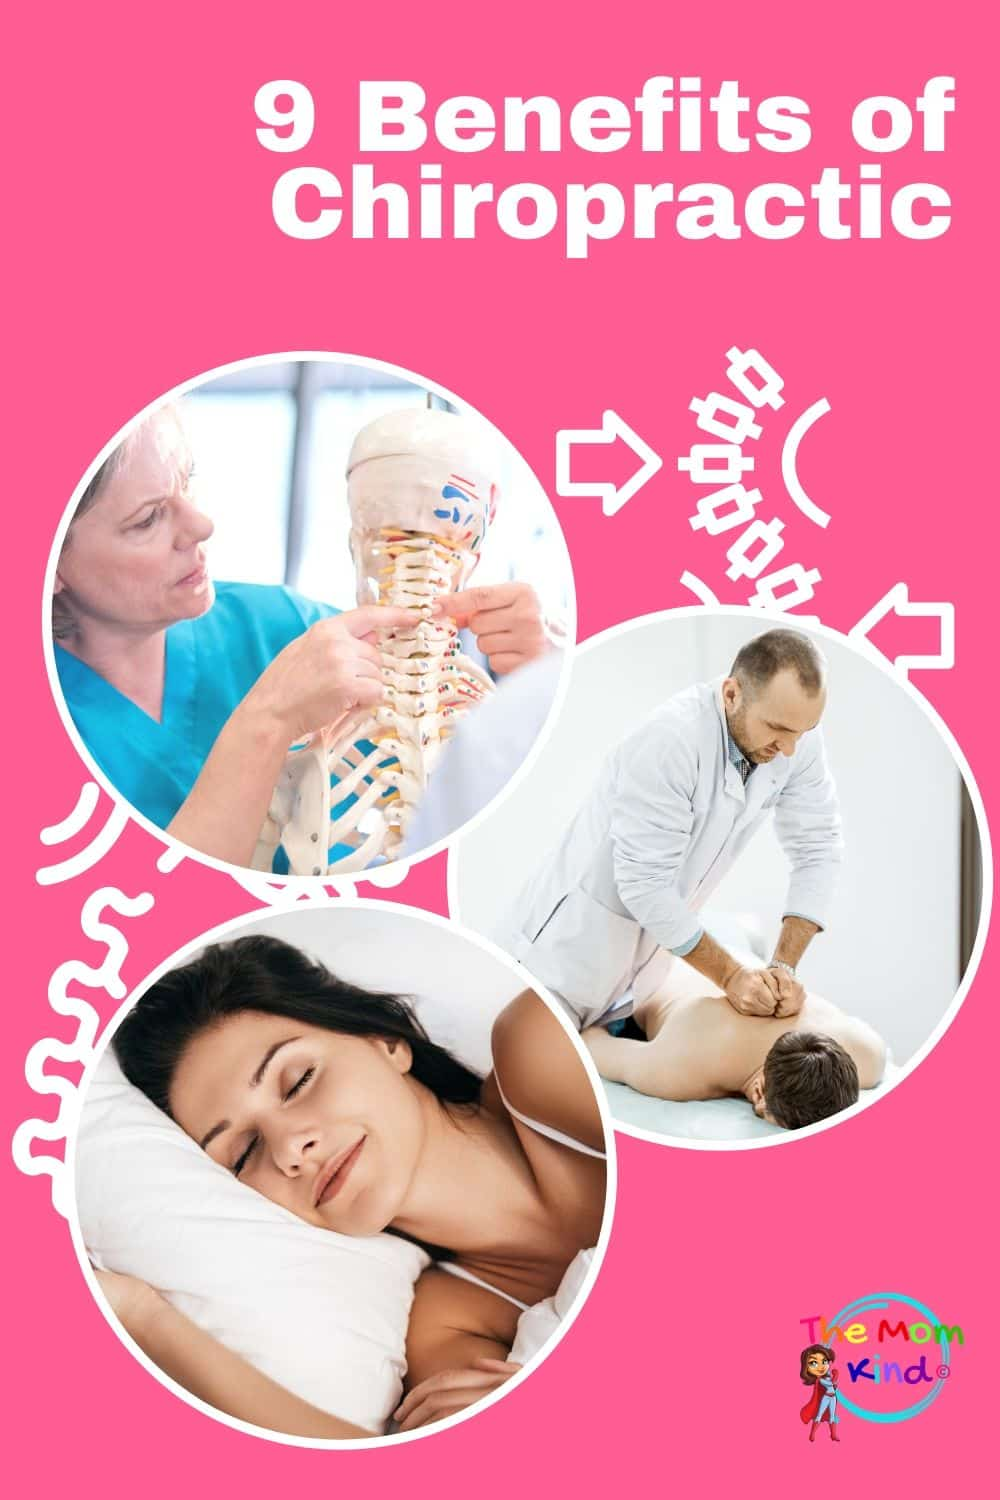 Chiropractic care has become more and more popular for several reasons. This guide lists the top 9 benefits of seeing a chiropractor. #health #lifestyle #chiropractor